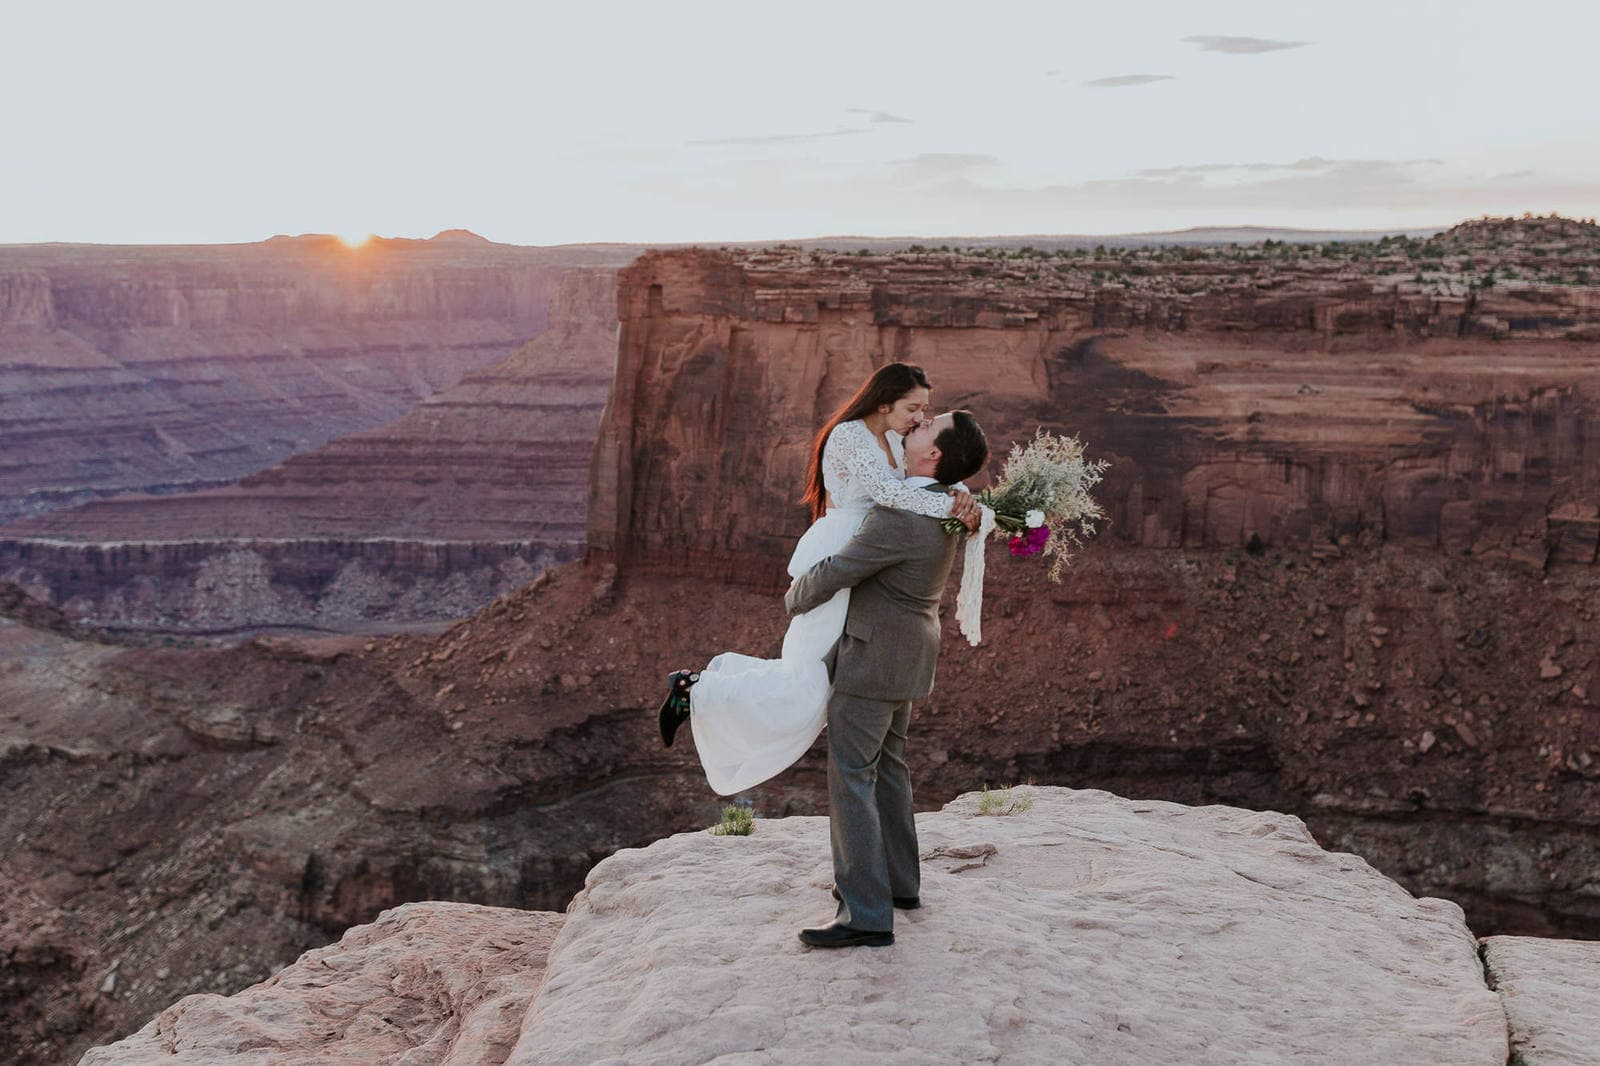 Couple celebrating marriage at Moab, Utah.